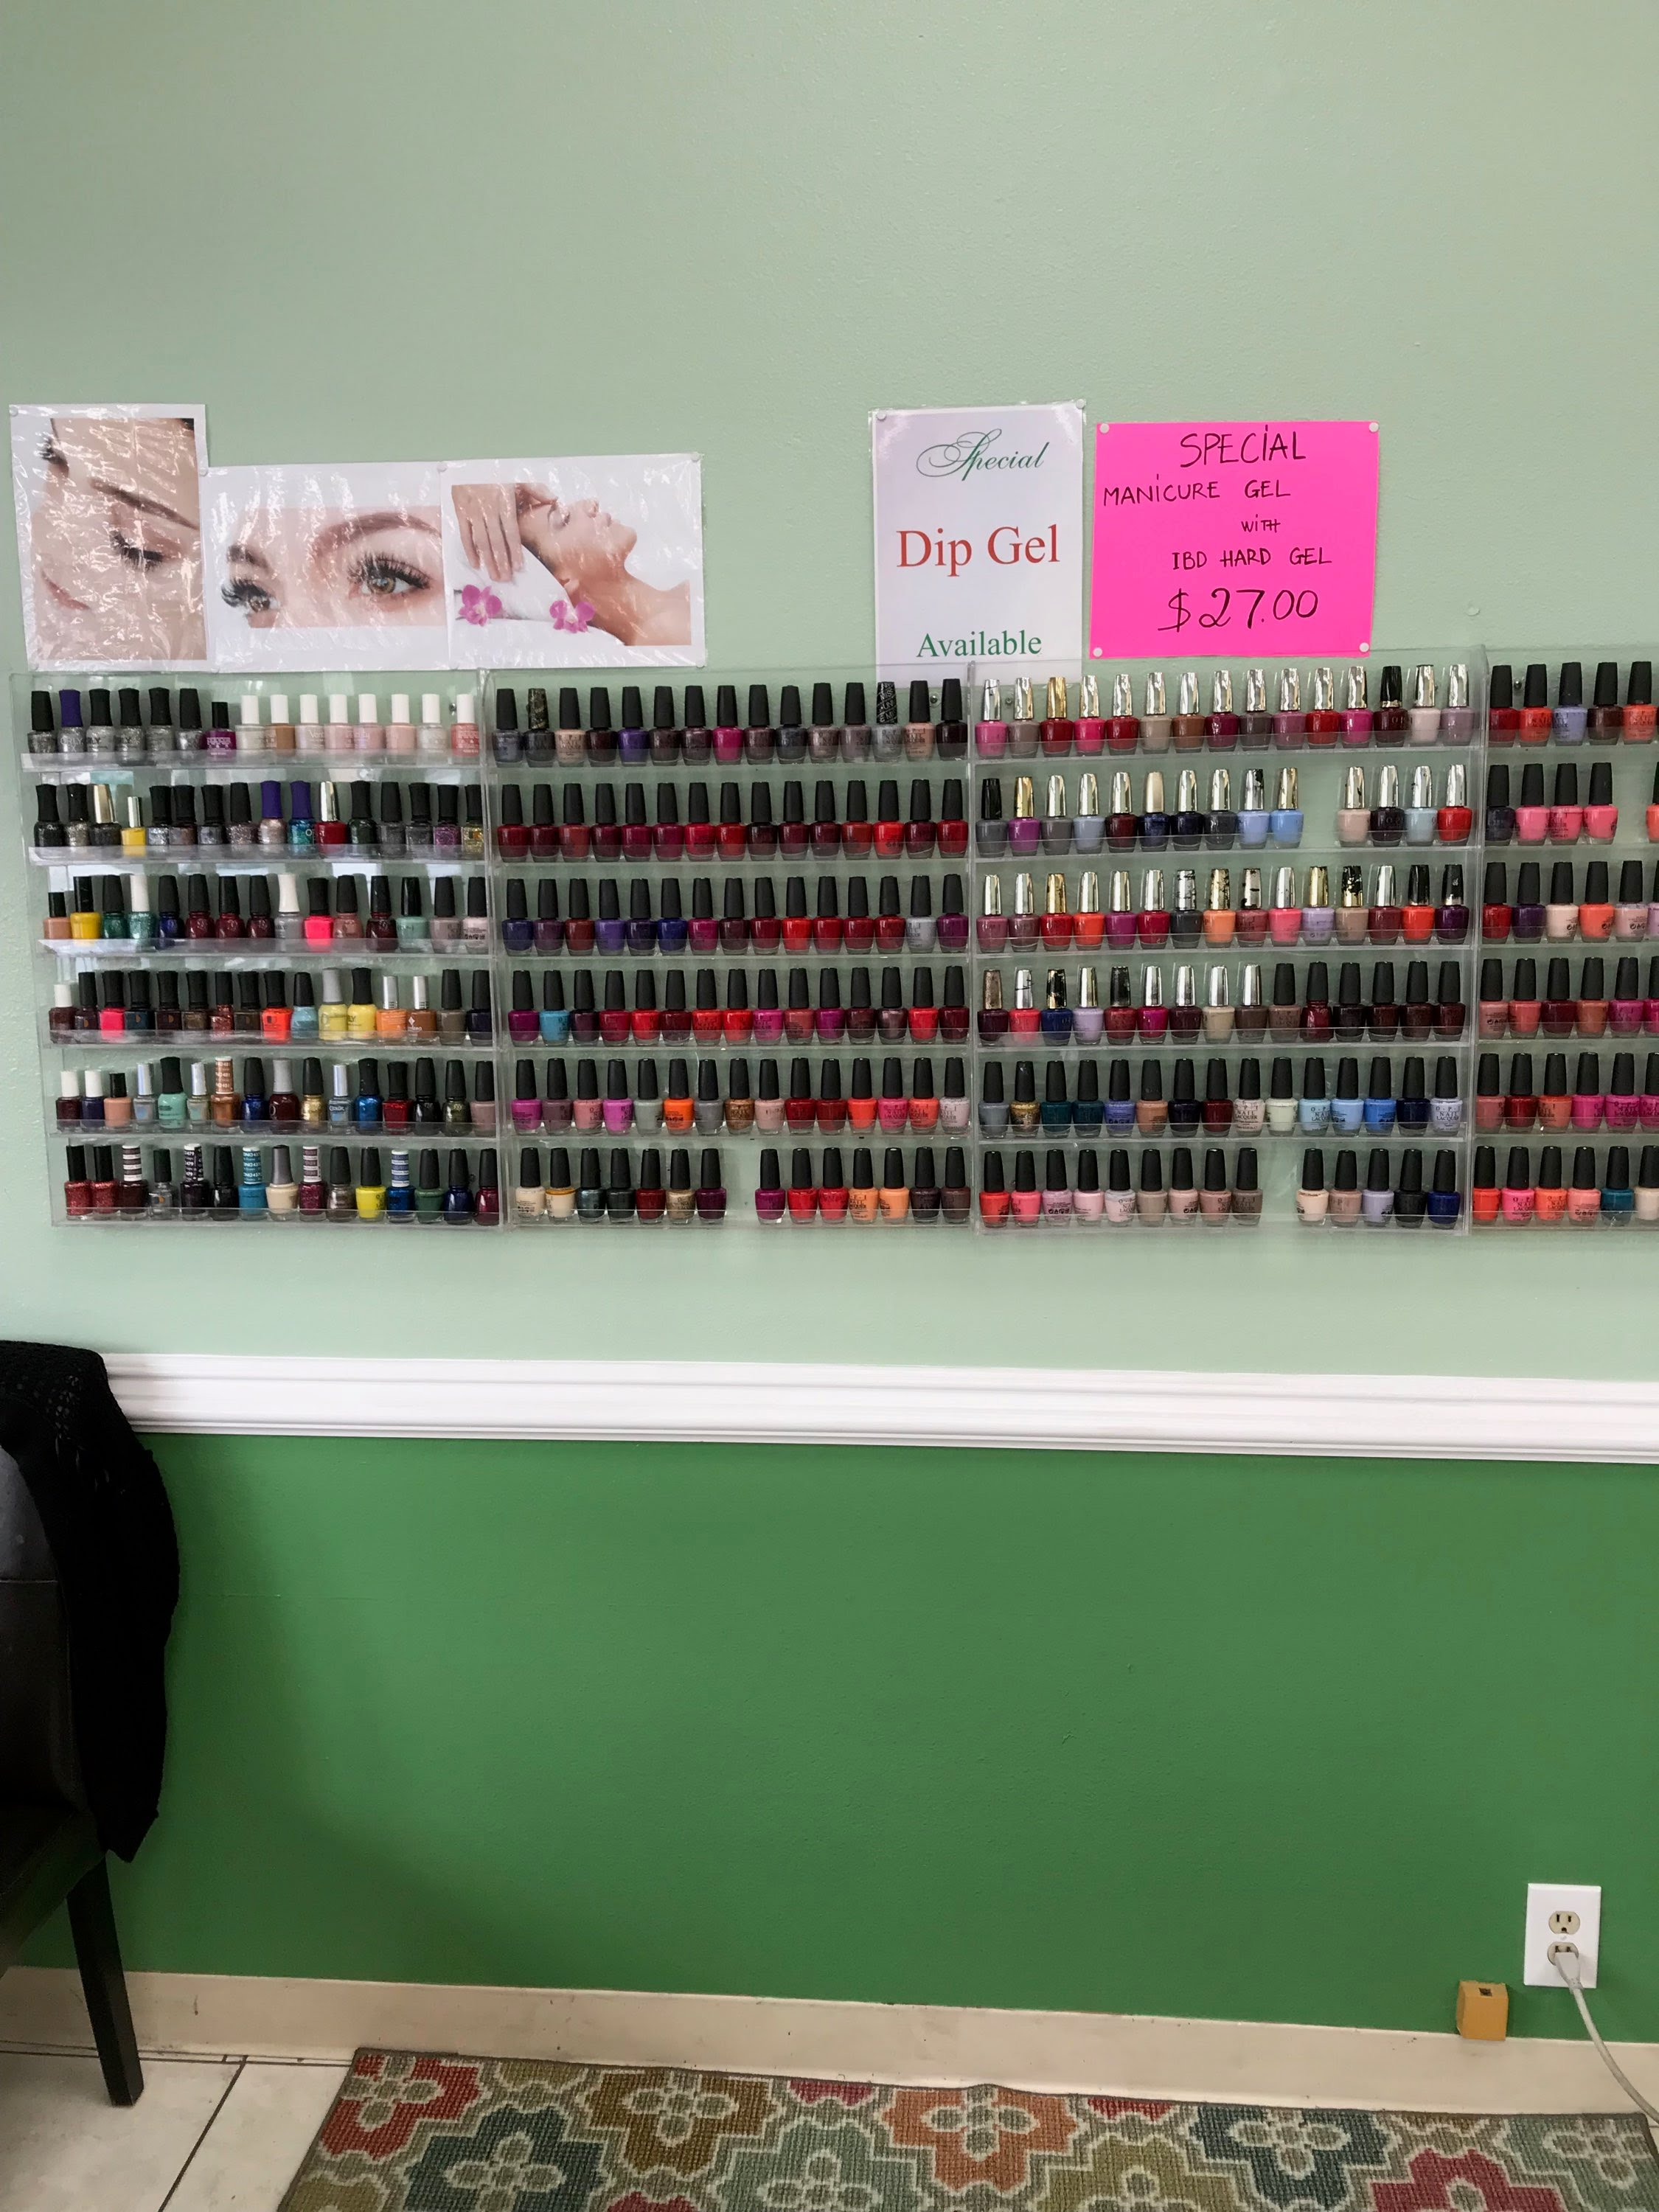 Nail Club - 3960 N Studebaker Rd Ste 104 Long Beach, CA 90808 - 562 ...